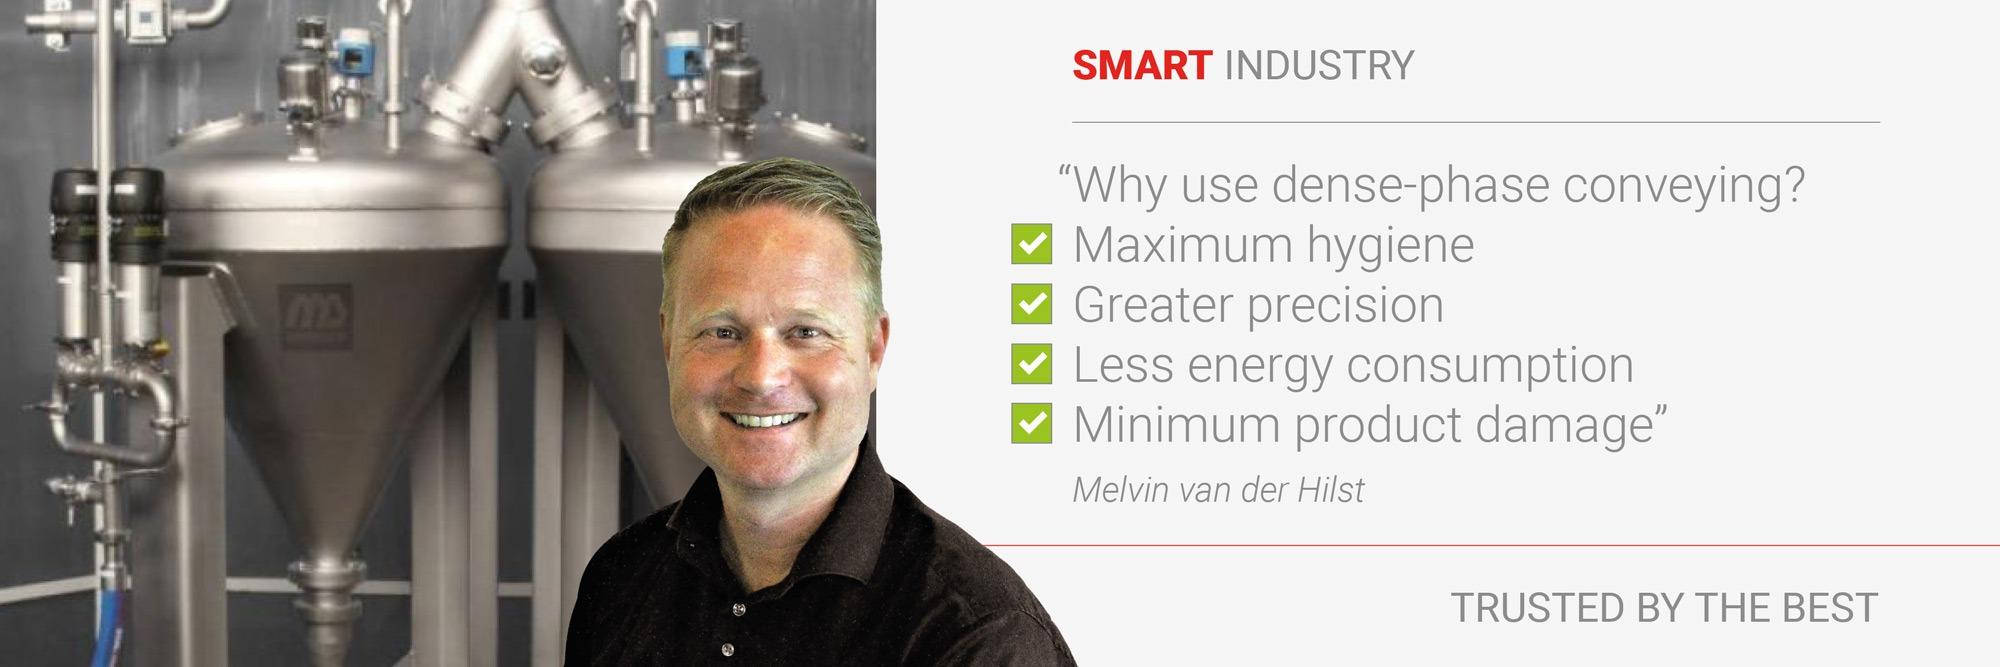 Smart Industry special - quote Melvin